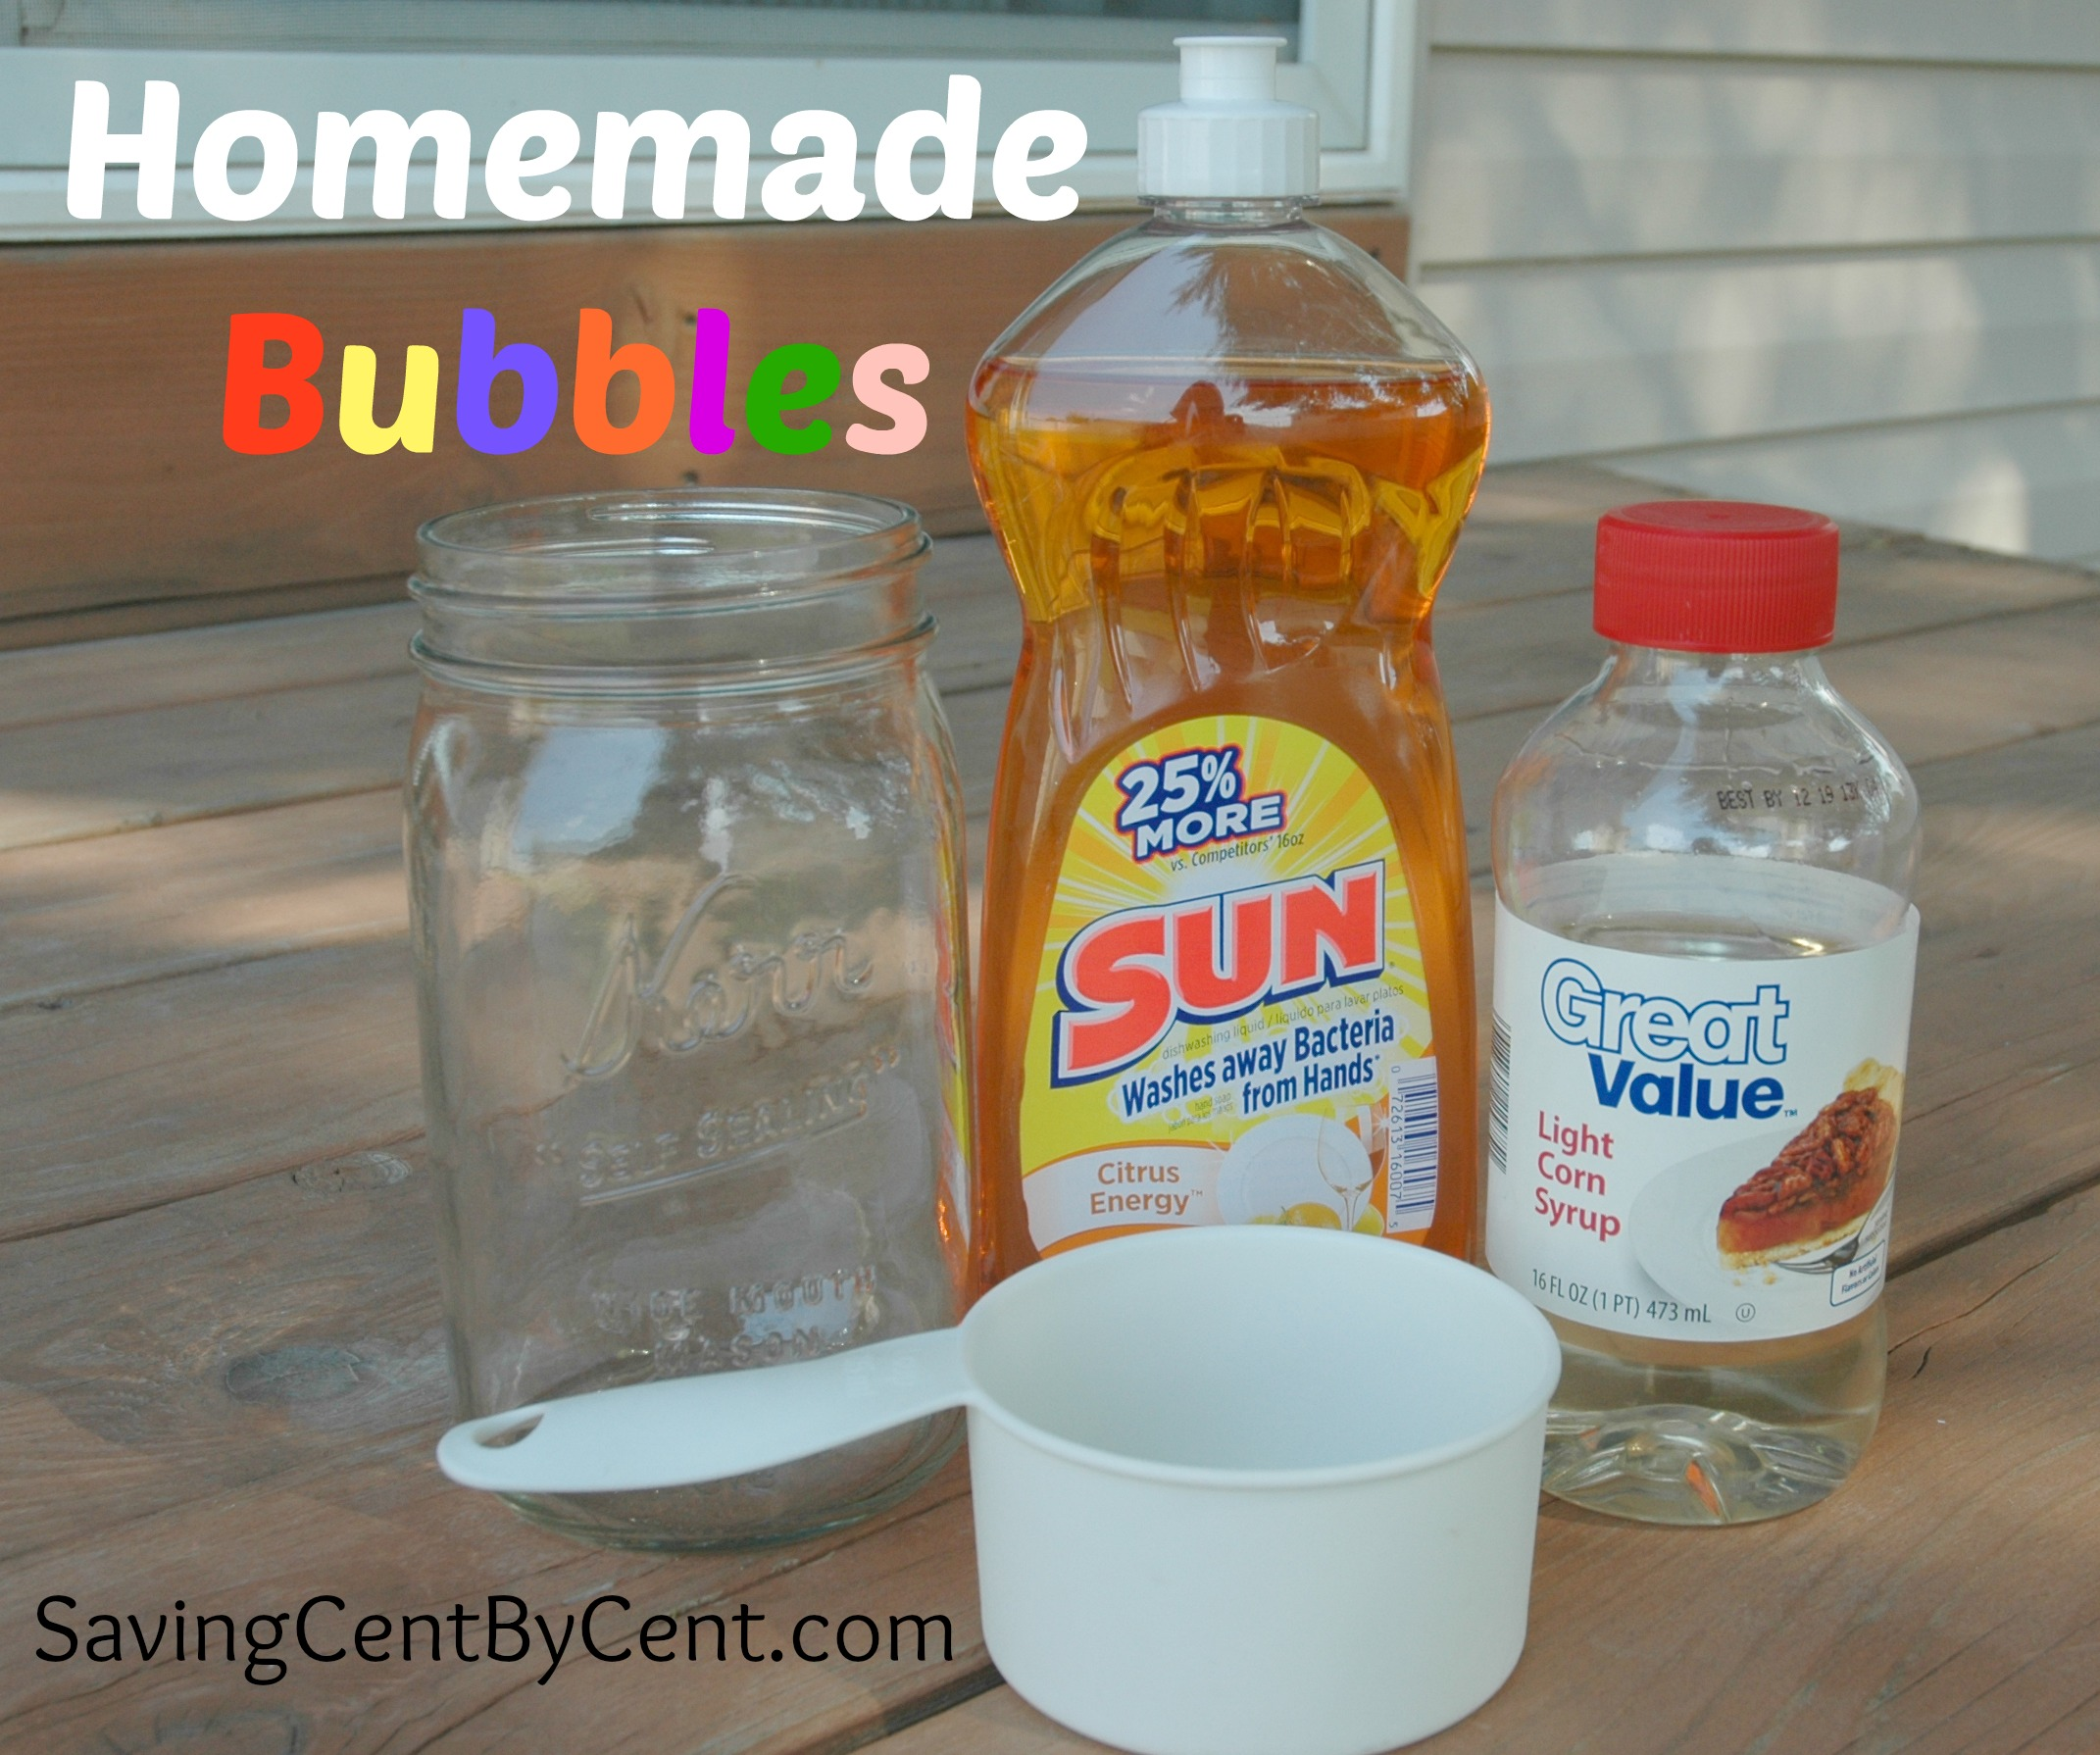 Homemade bubbles recipe saving cent by cent for How to make bubbles liquid at home